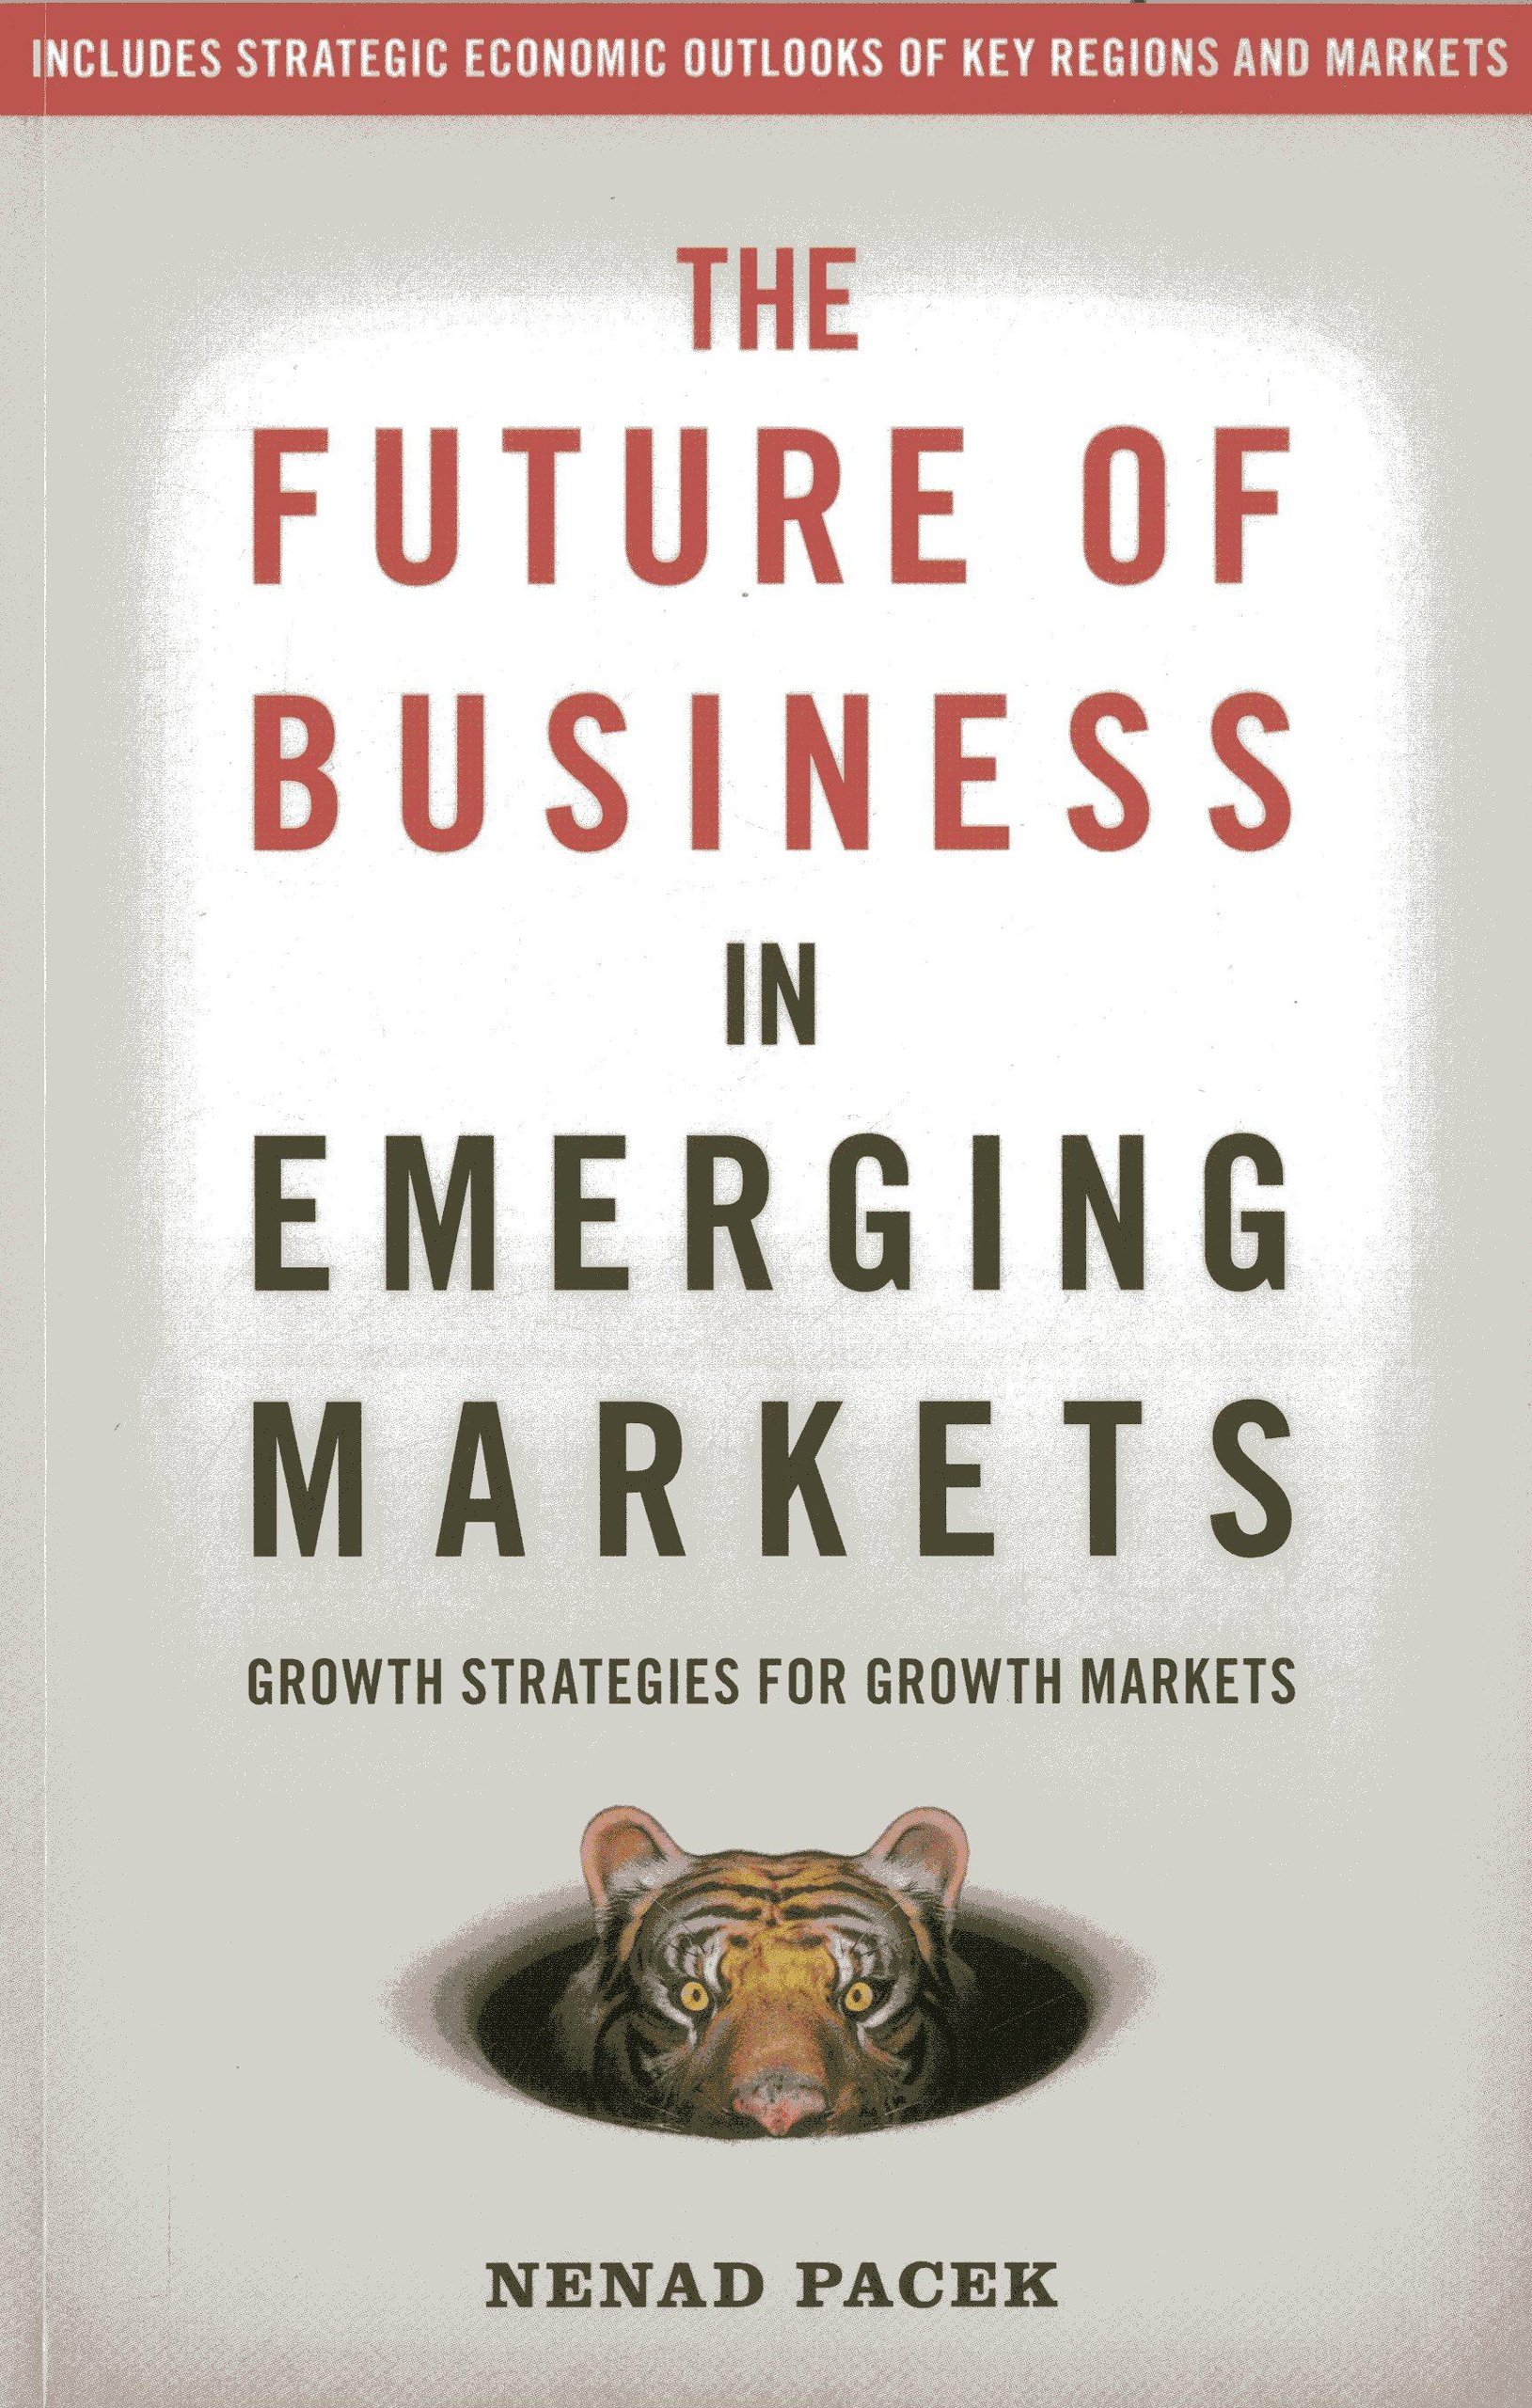 Read Online The Future of Business in Emerging Markets: The Success Factors For Market Growth In The 21St Century ePub fb2 book